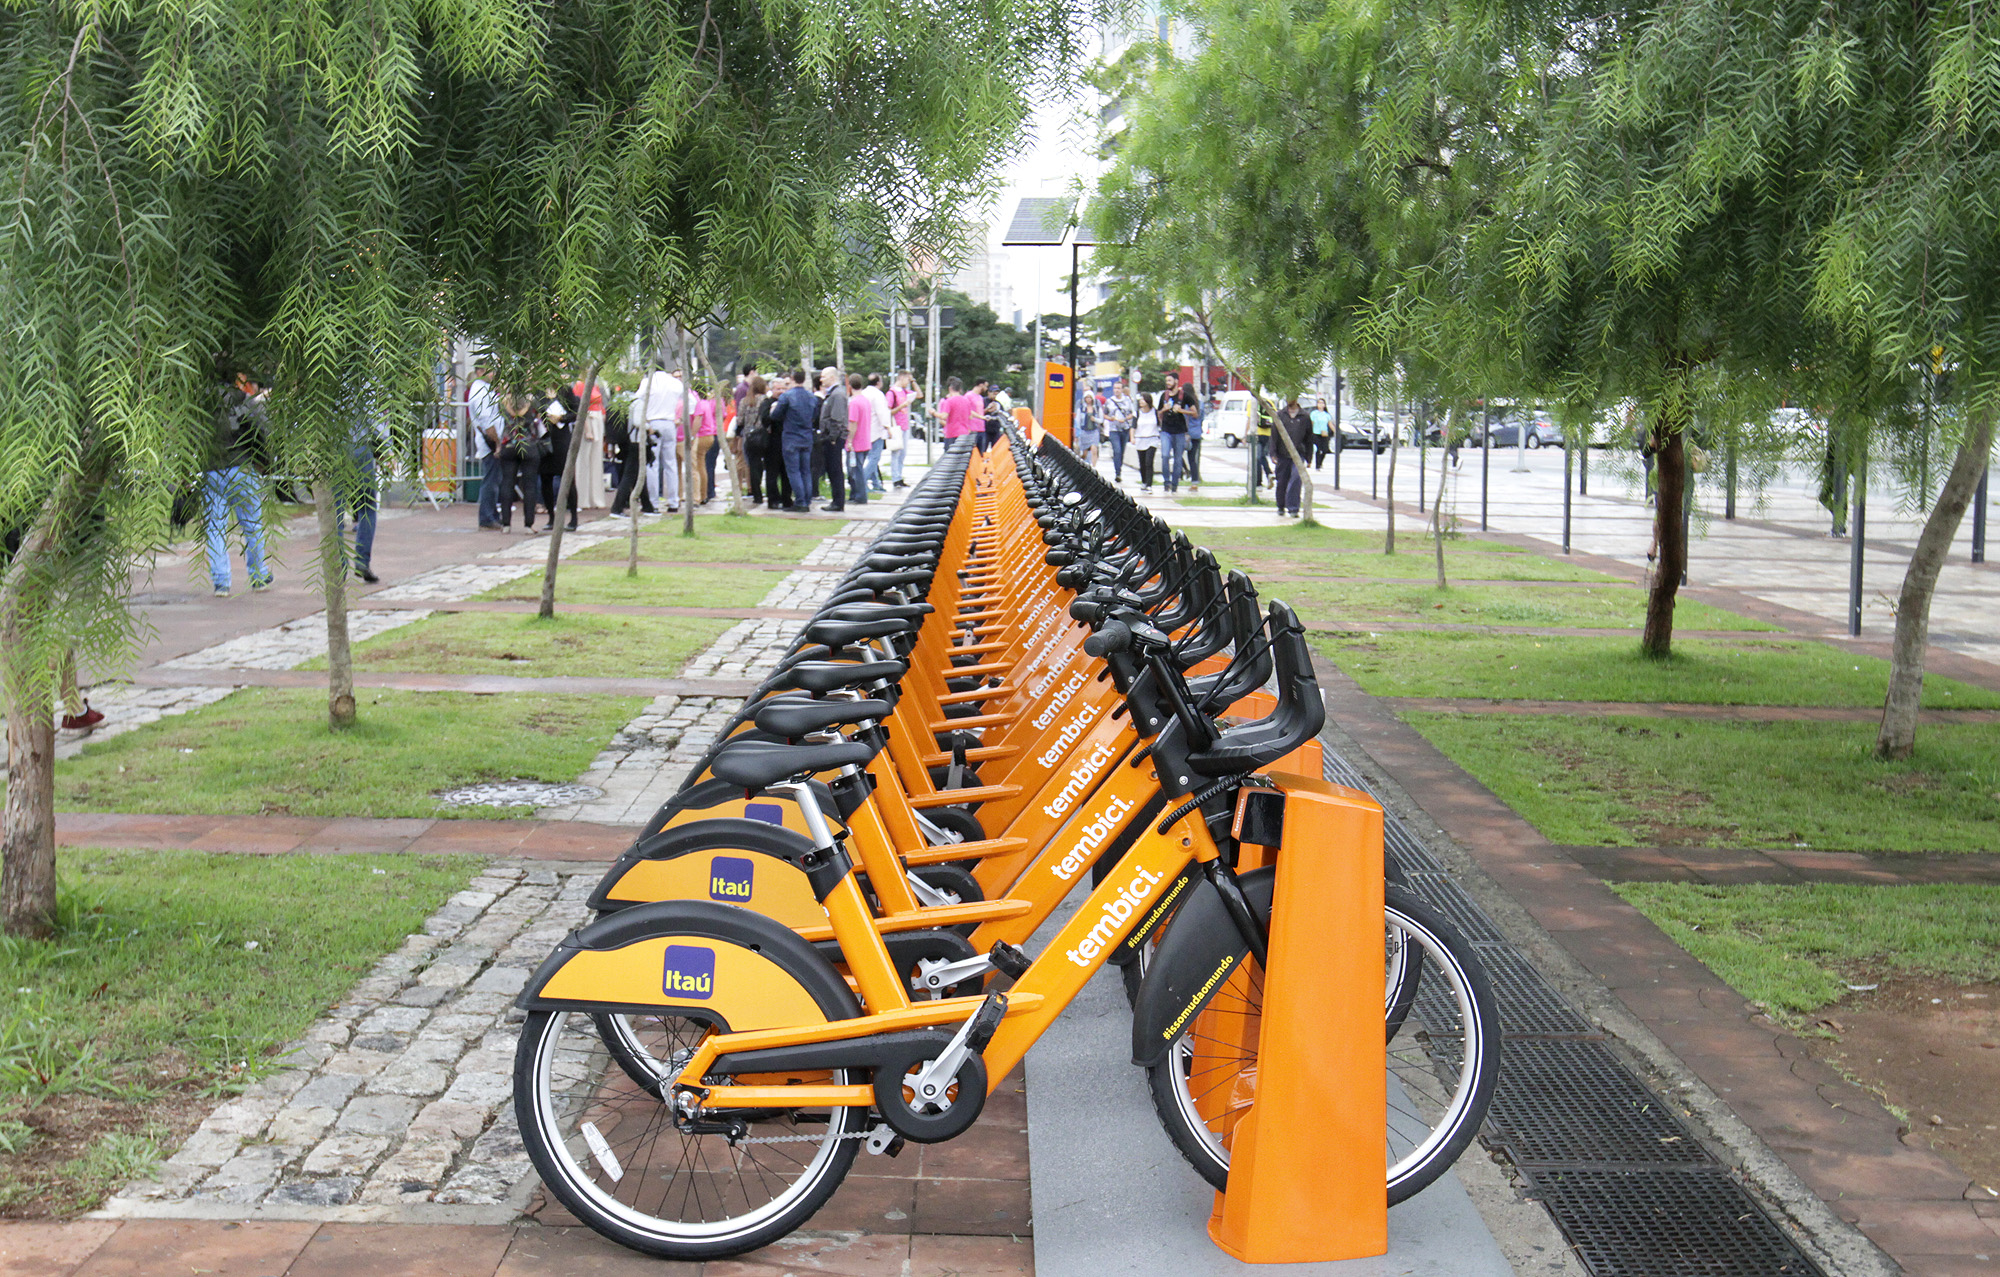 Itaú bicycles in a public park